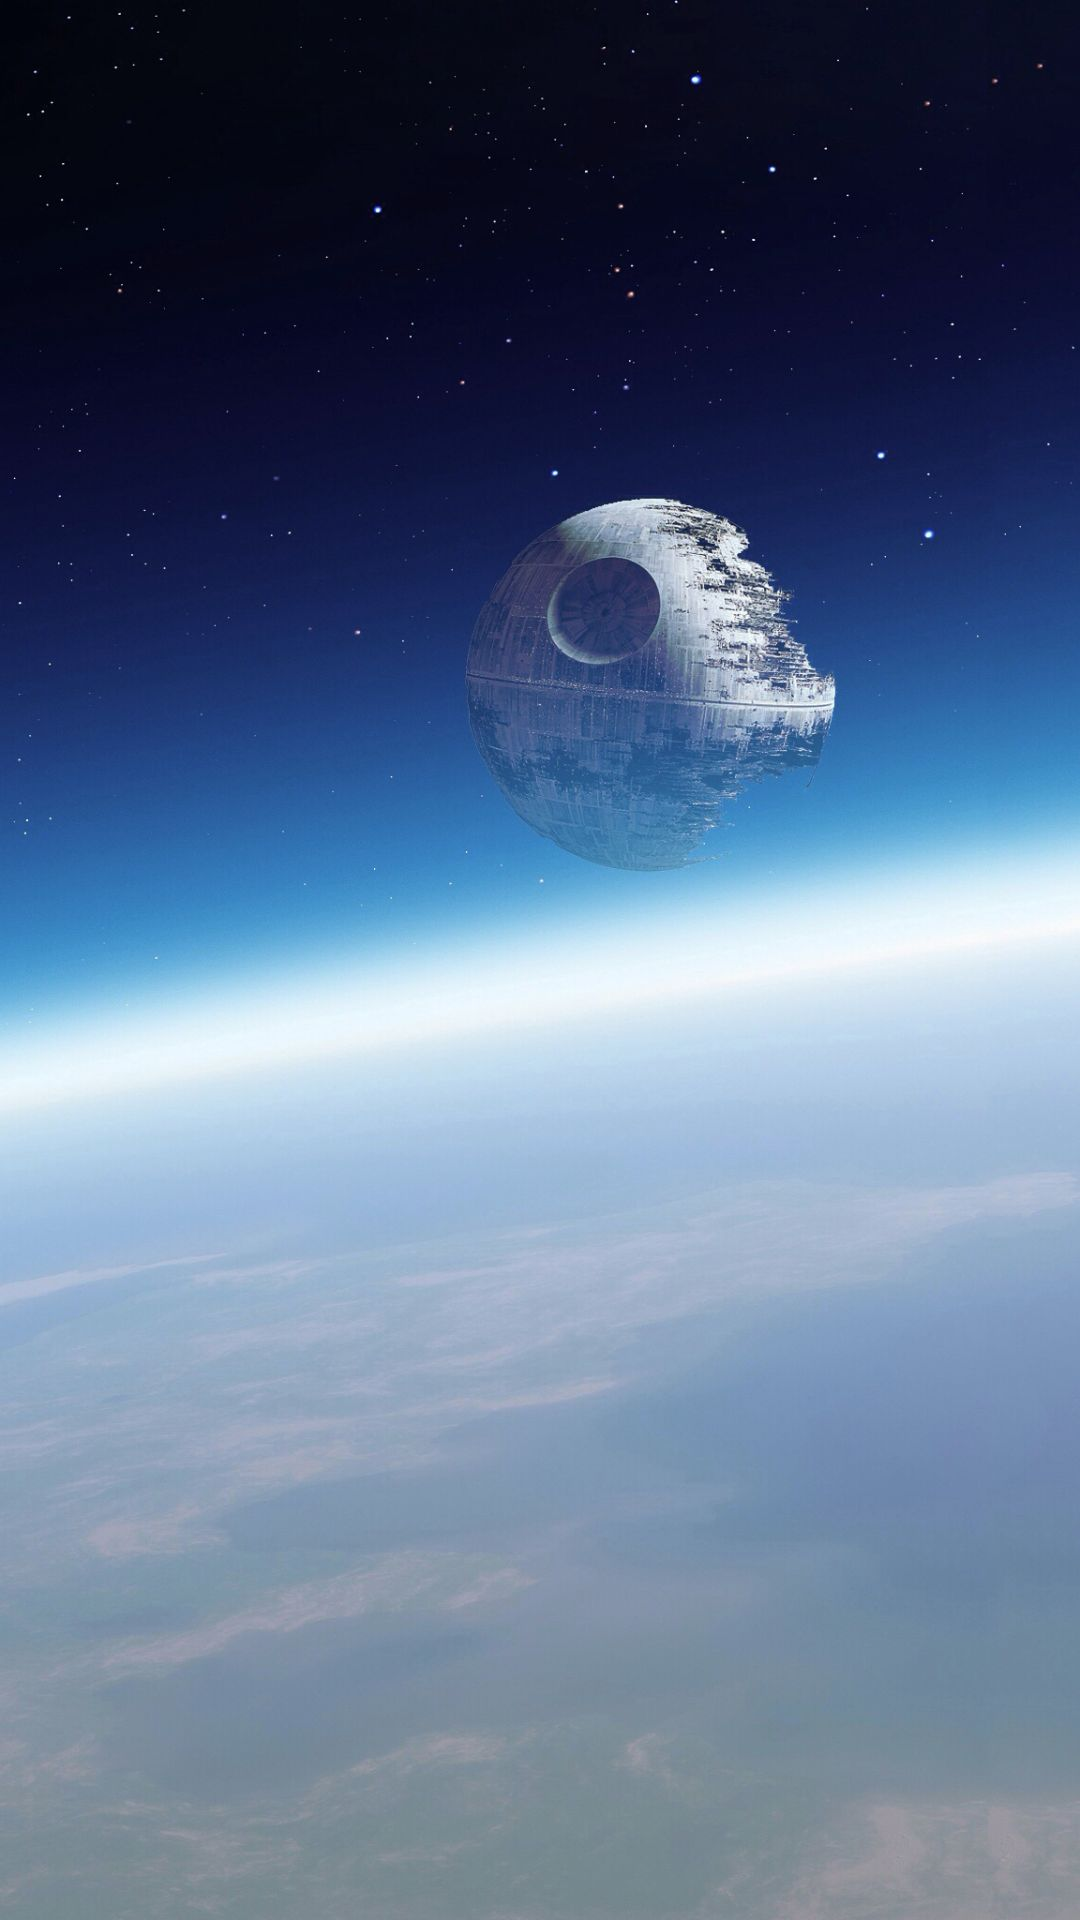 Death Star in orbit